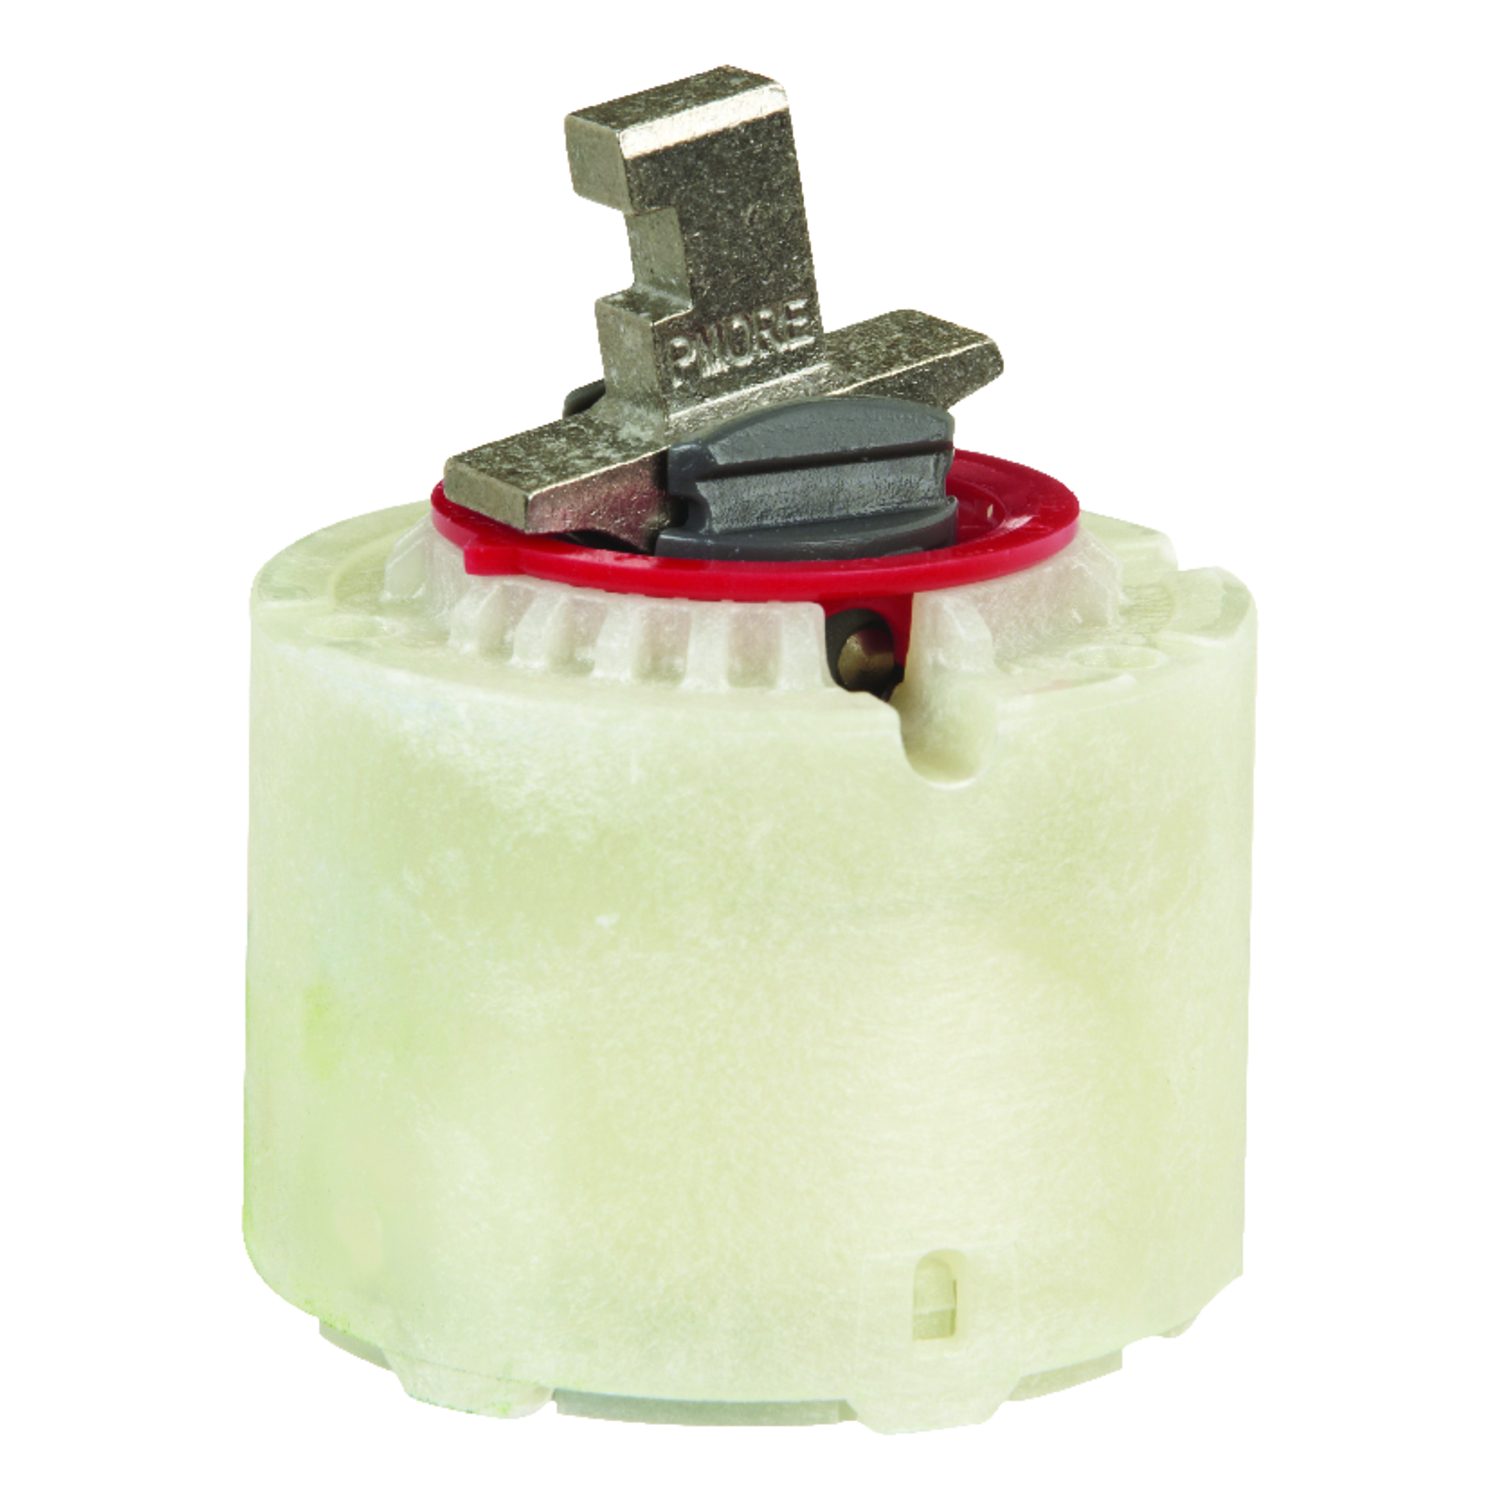 American Standard Single Control Faucet Cartridge For American ...